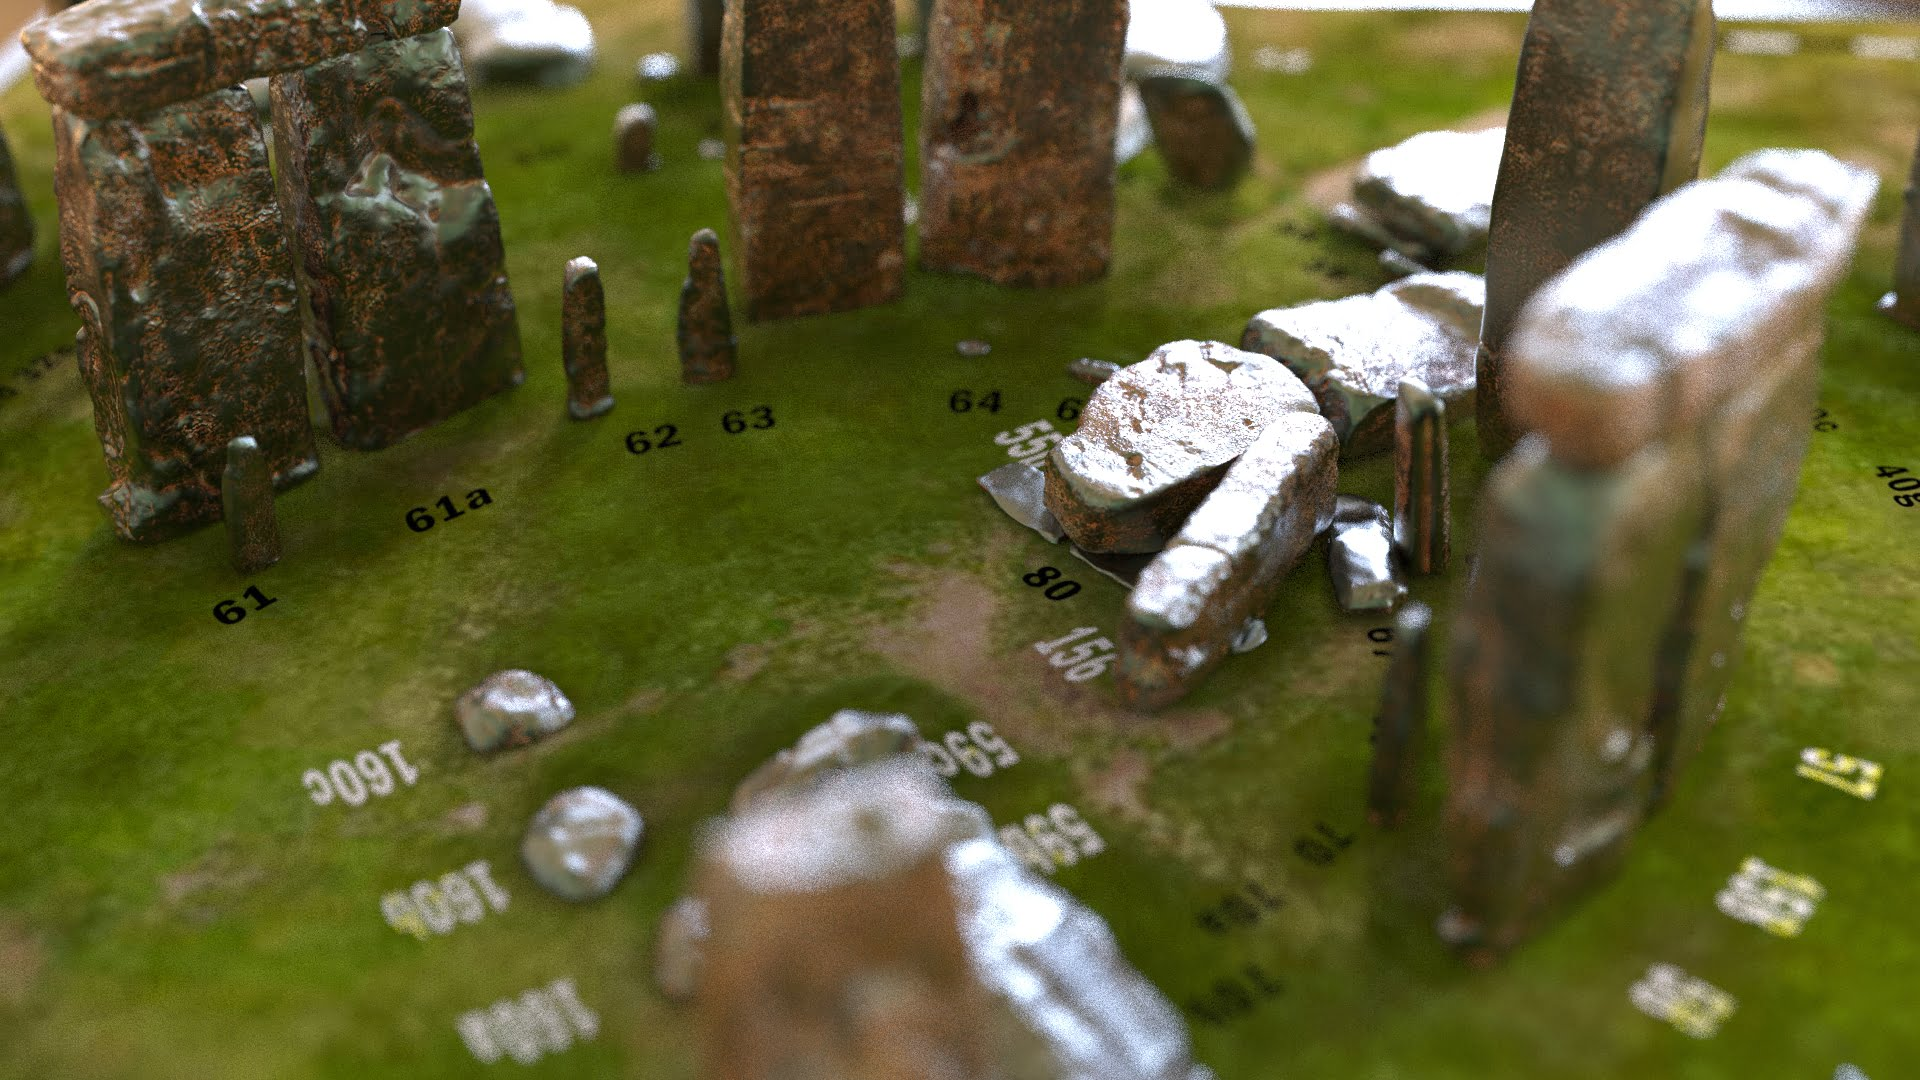 Buy Stonehenge Models: Light rust patina on cold cast Stonehenge model replica 195 x 195 mm or 7.7 x 7.7 inches square base with grass decal with or without numbered stones on ground map 004  - 200th scale pick n mix -